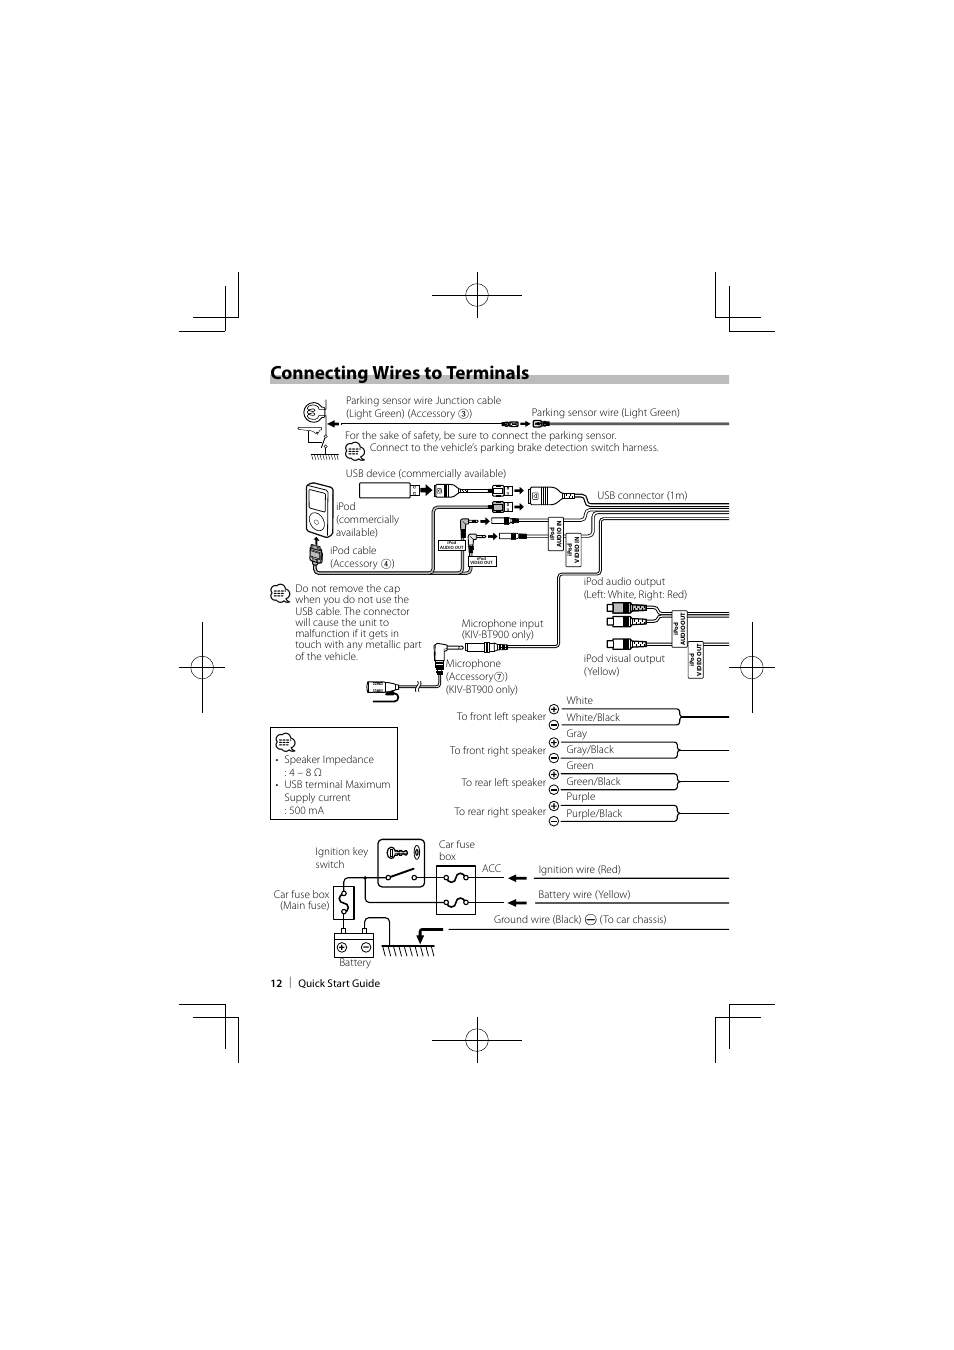 medium resolution of kenwood bt900 wiring diagram schema wiring diagrams kenwood cd player wiring diagram connecting wires to